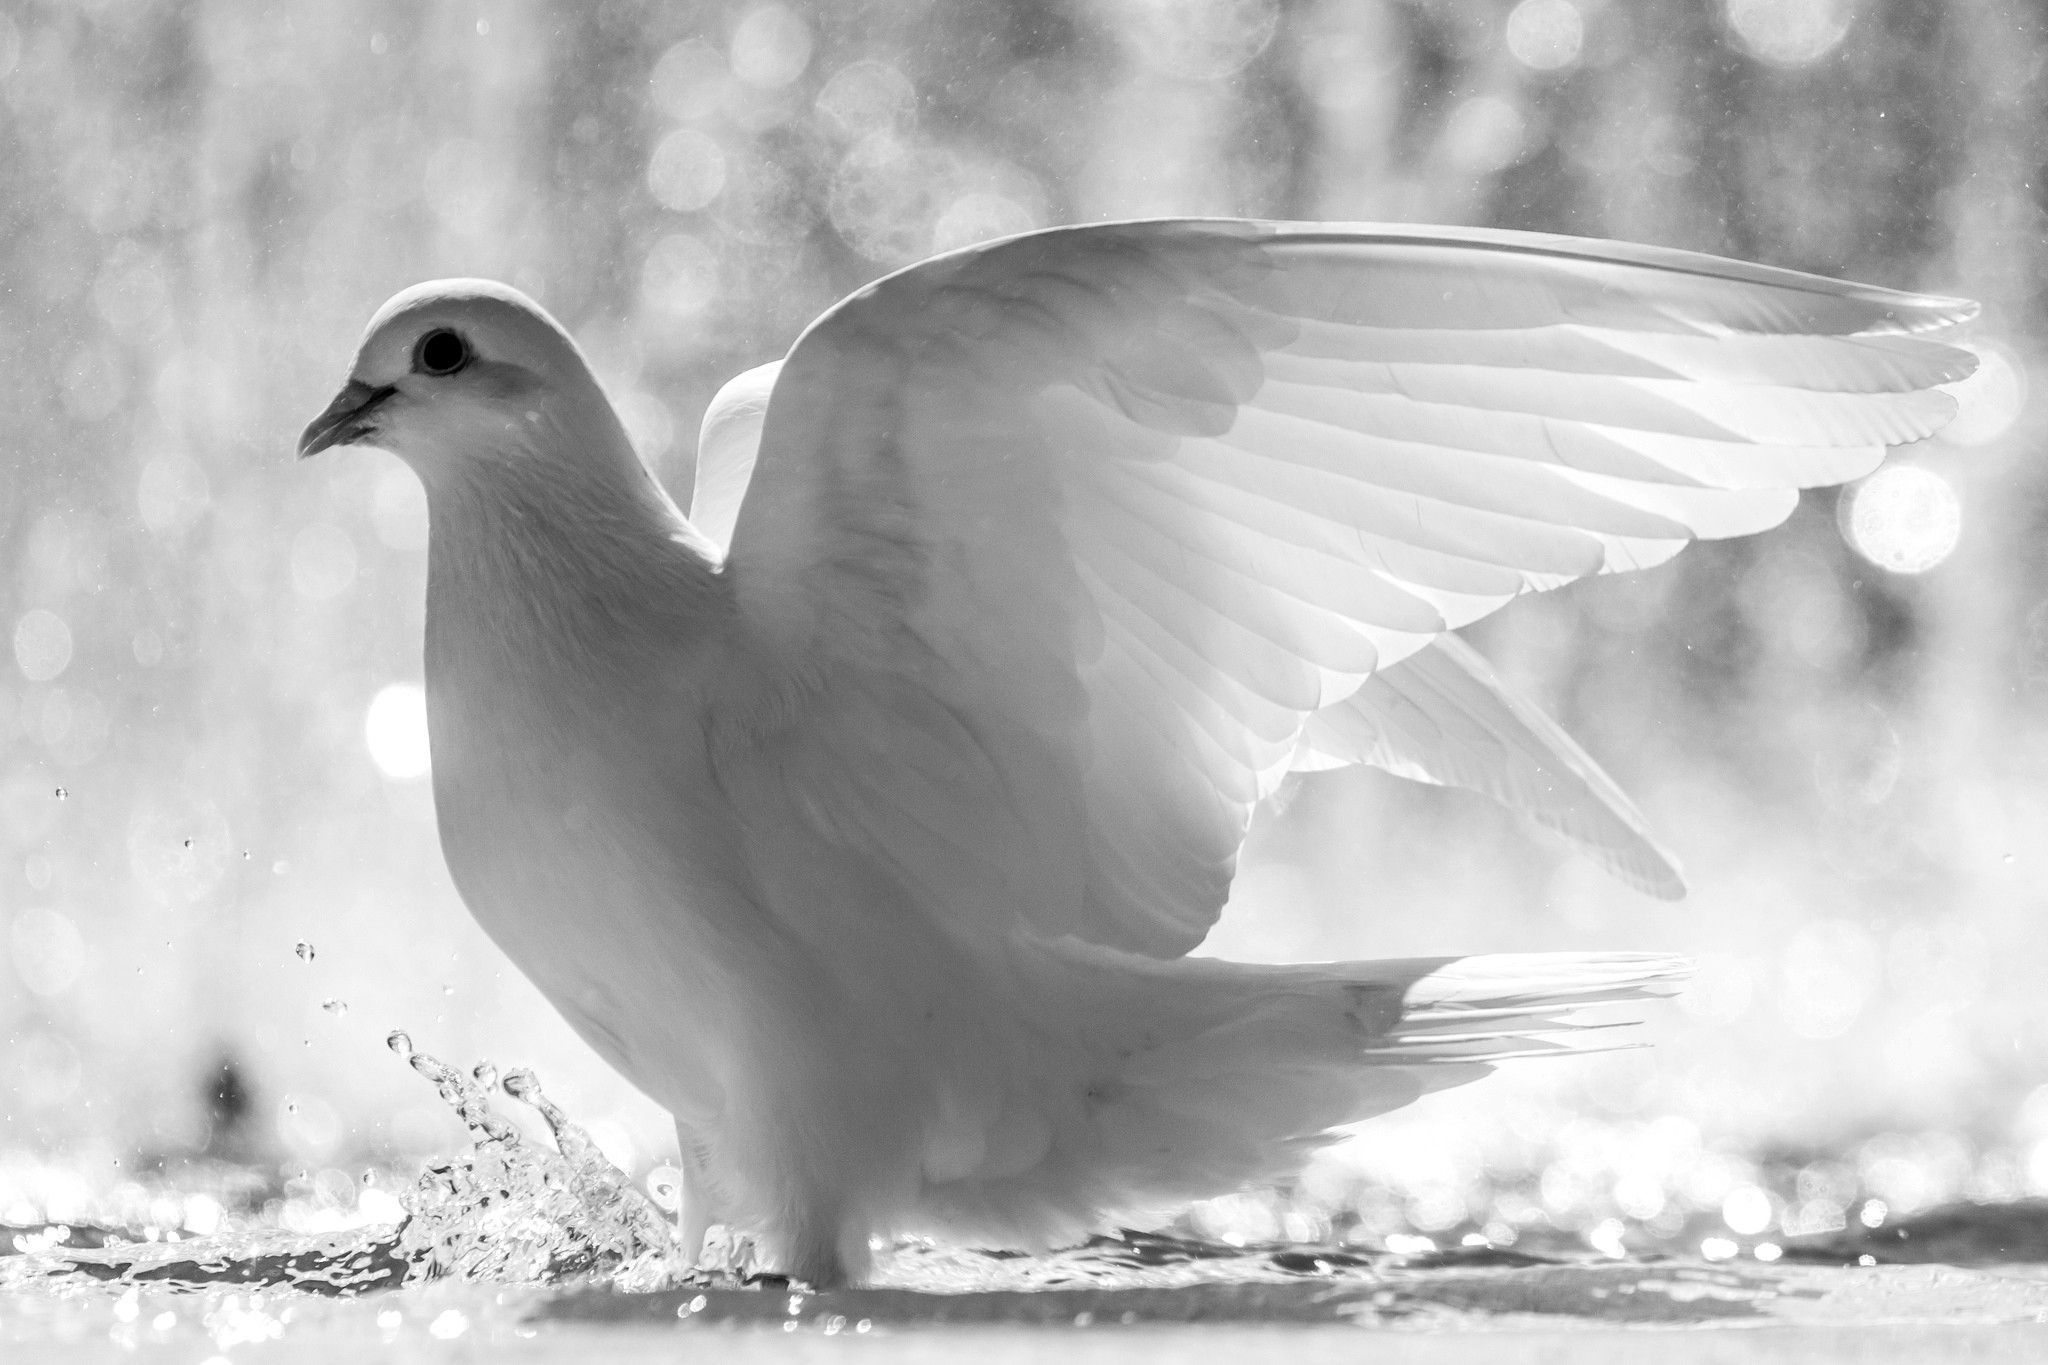 Beautiful White Dove Of Peace Animal Wallpapers Hd Wallpaper Download For Ipad And Iphone Widescreen 2160p Uhd 4k Hd White Pigeon Dove Pictures White Doves